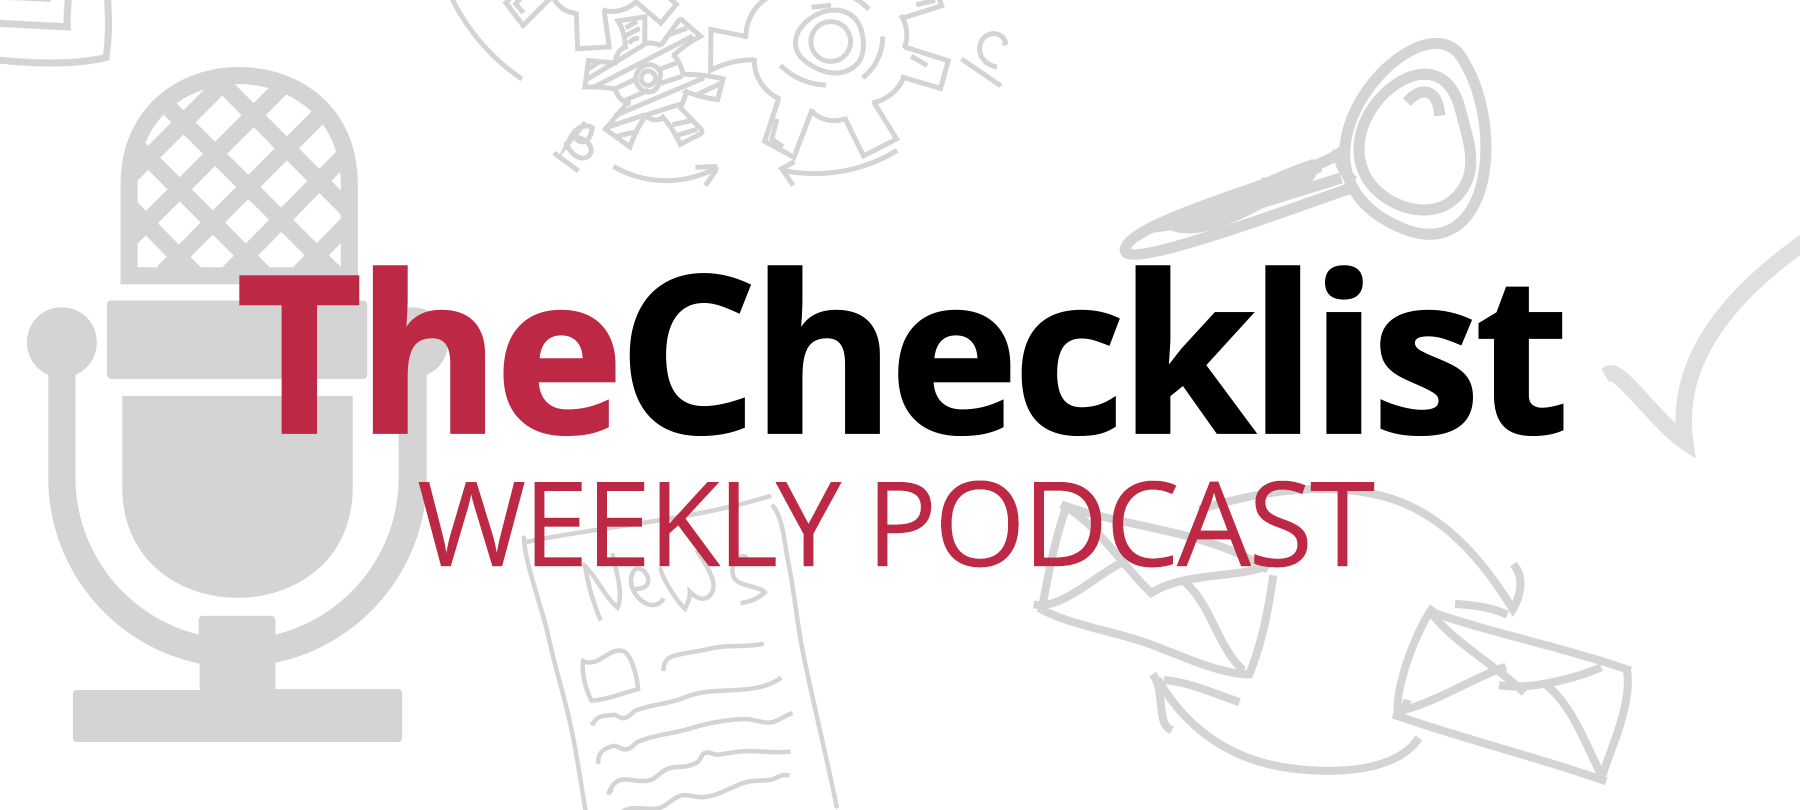 Episode: Checklist 09: Demystifying Malware Types and Terminology (Part 1)